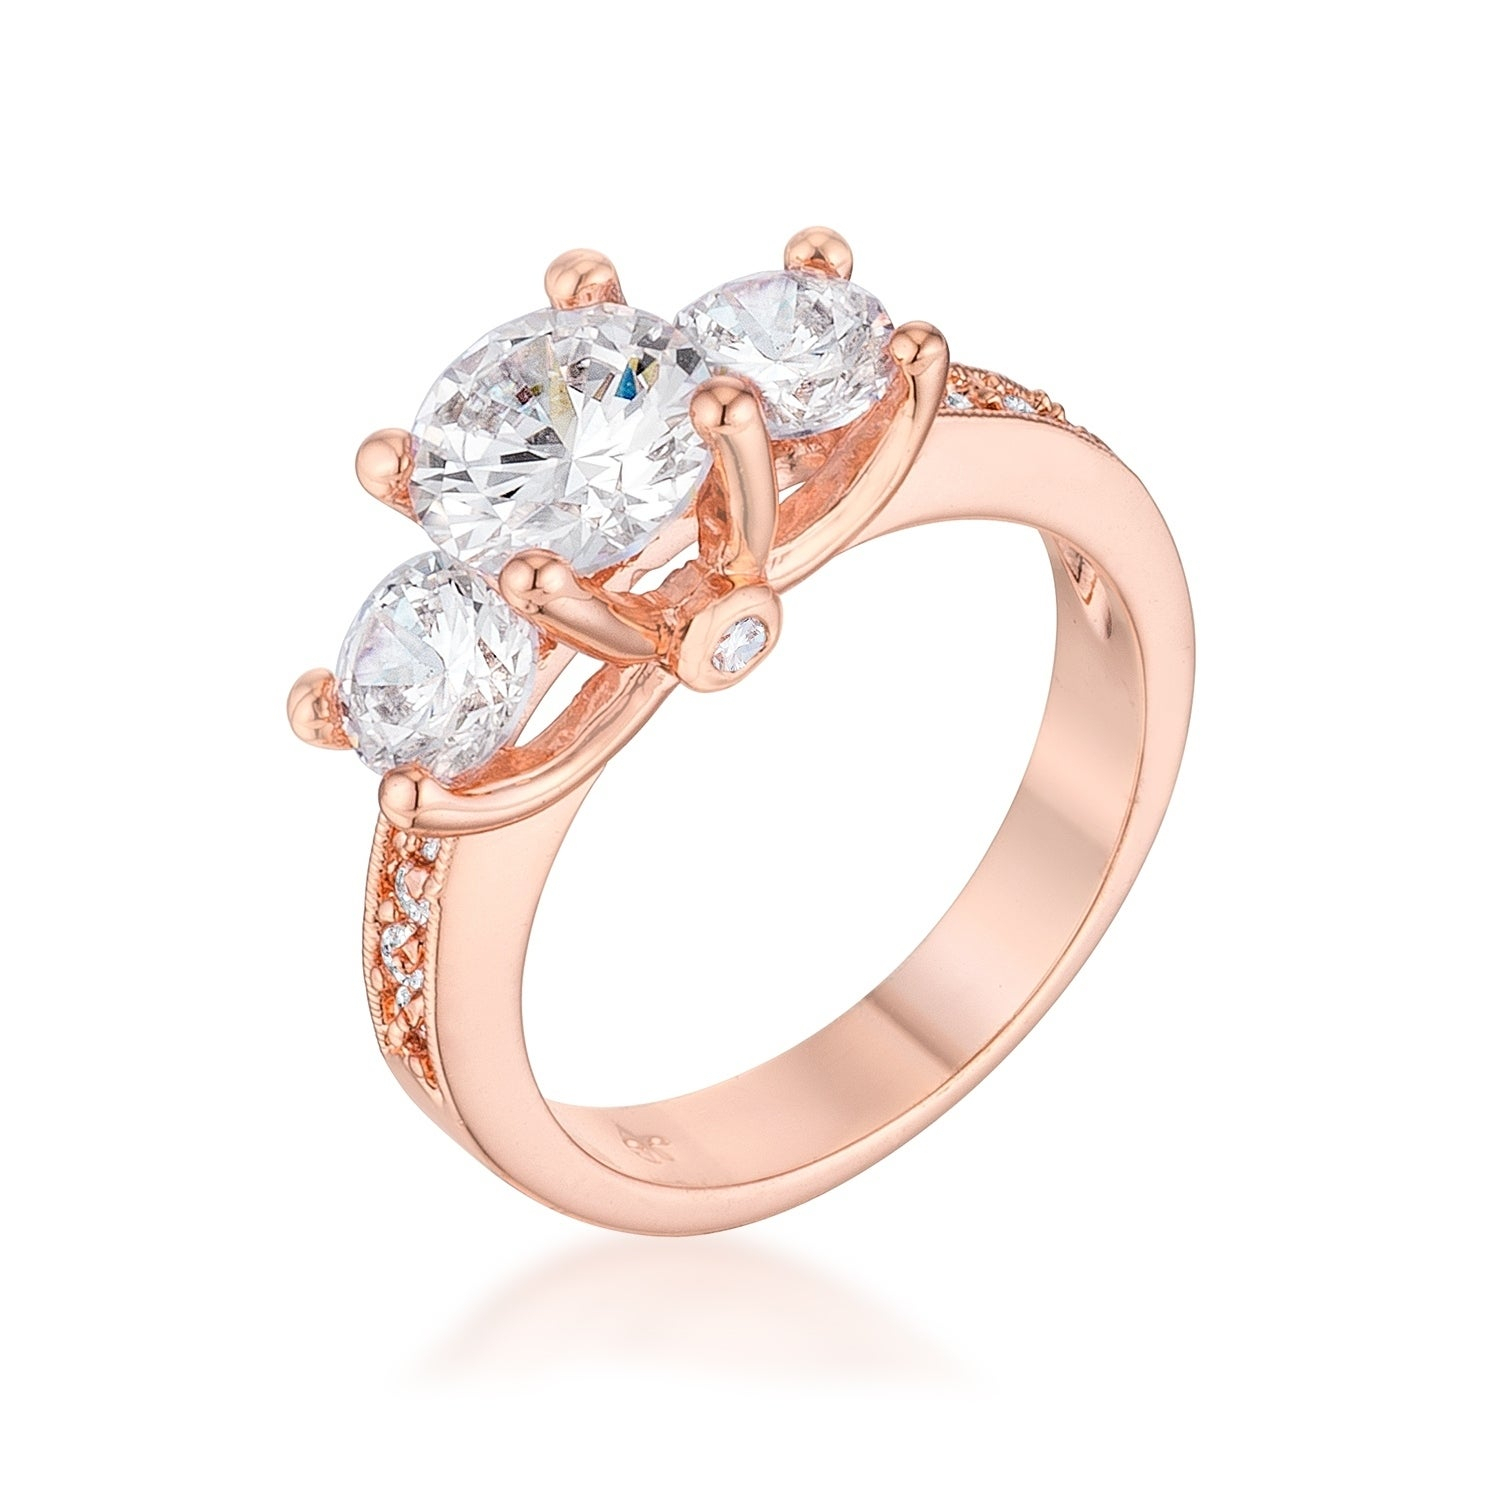 Dazzling Three Stone Engagement Ring With Cz – Clear With Regard To Most Recent Clear Three Stone Rings (Gallery 22 of 25)